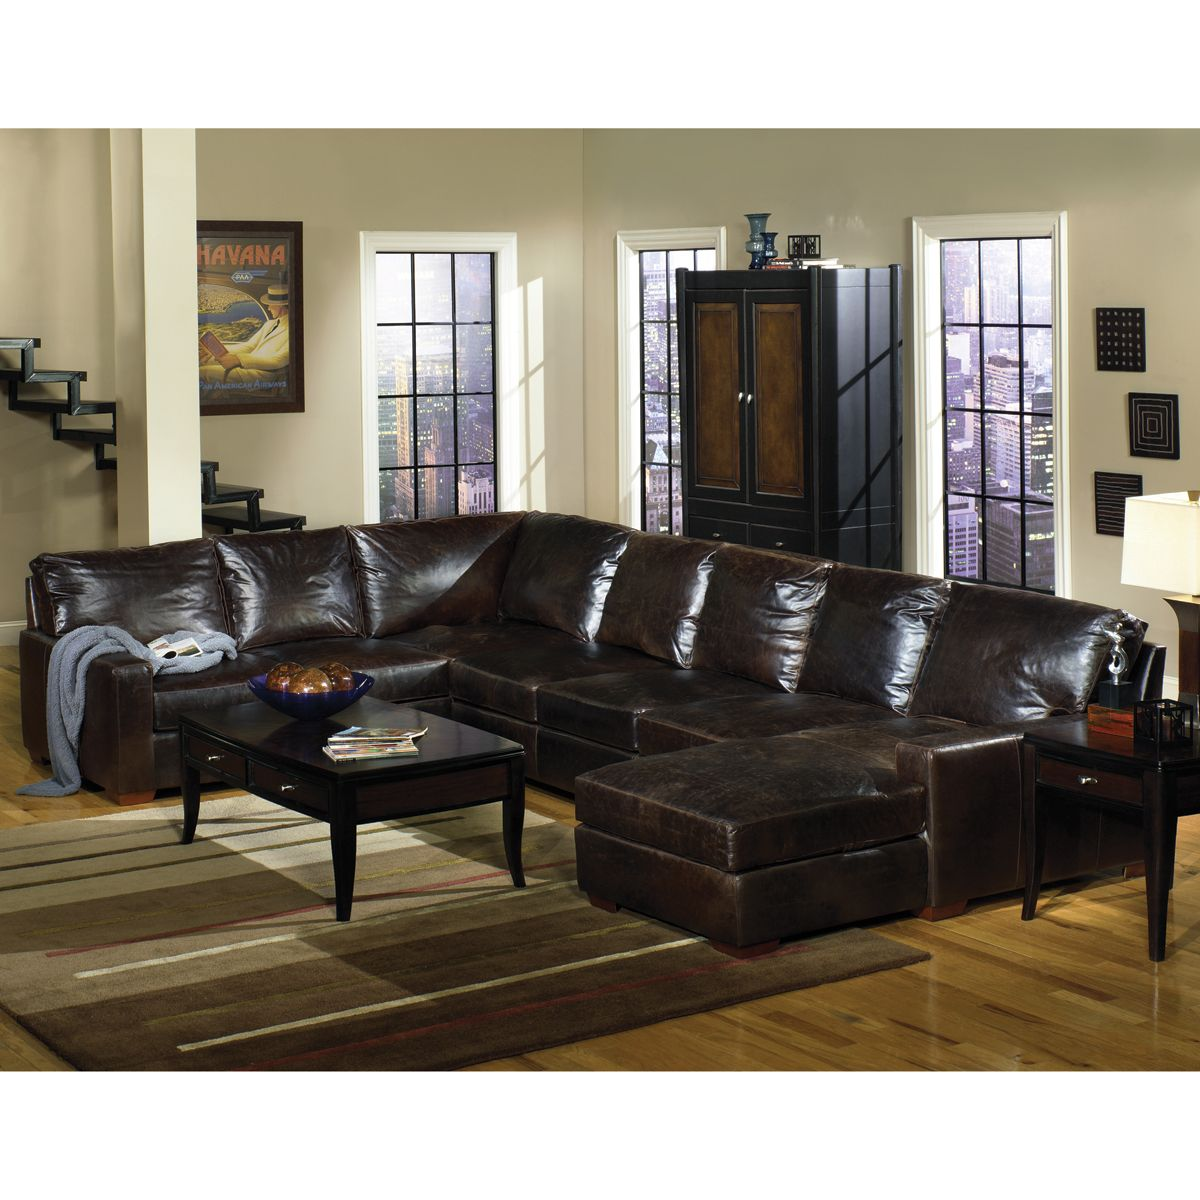 Brompton 3 Piece Dark Tobacco Leather Sectional House